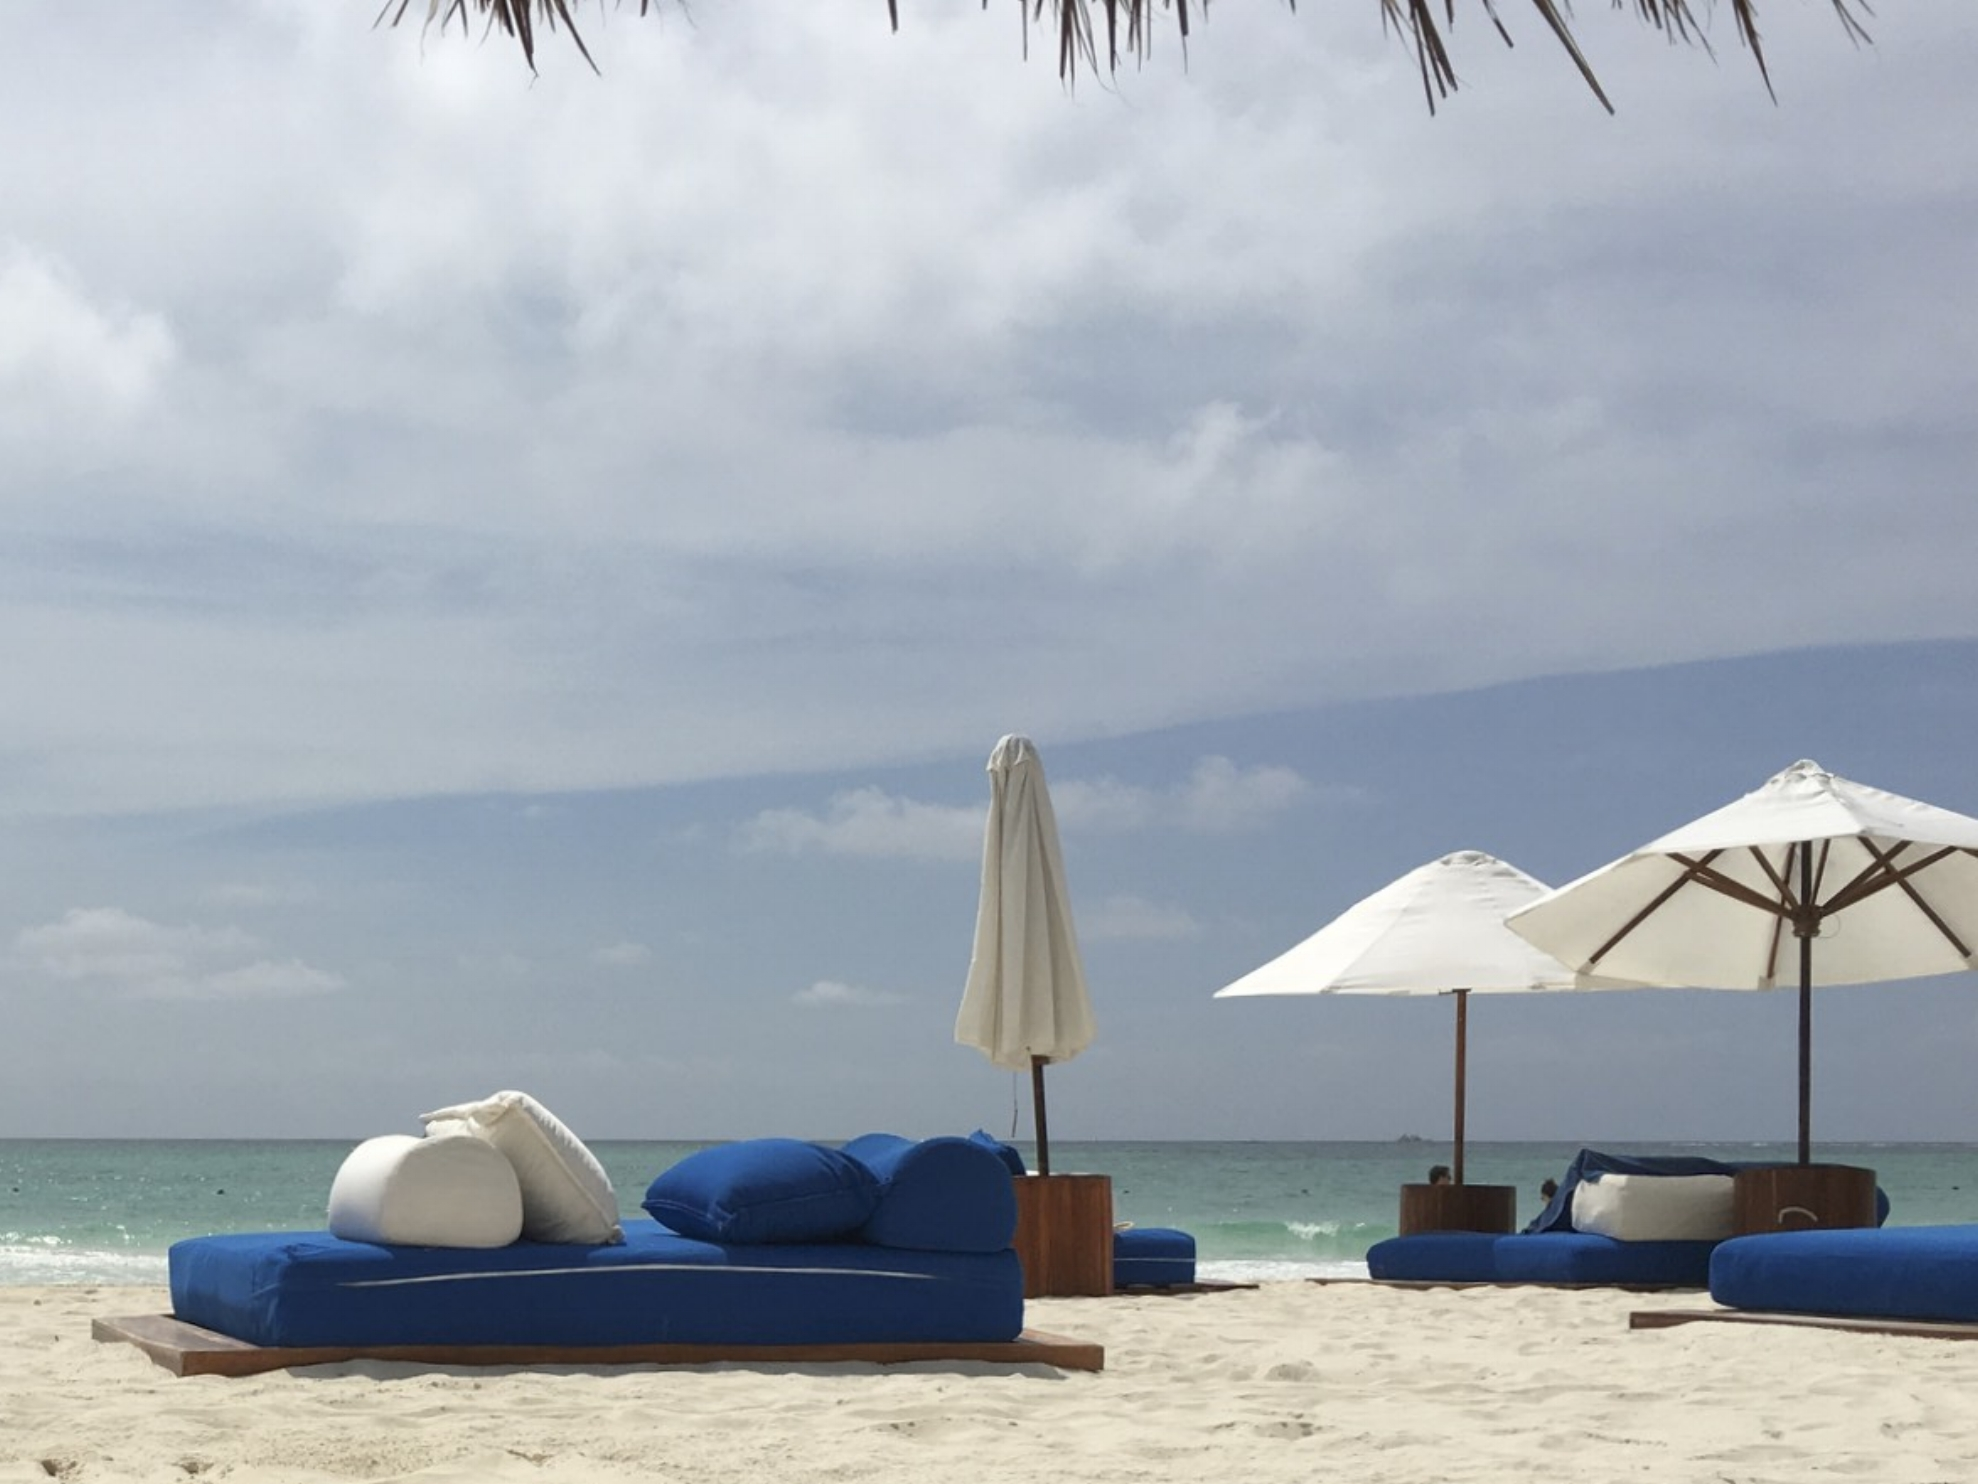 Relax at a Belmond hotel on a perfect beach